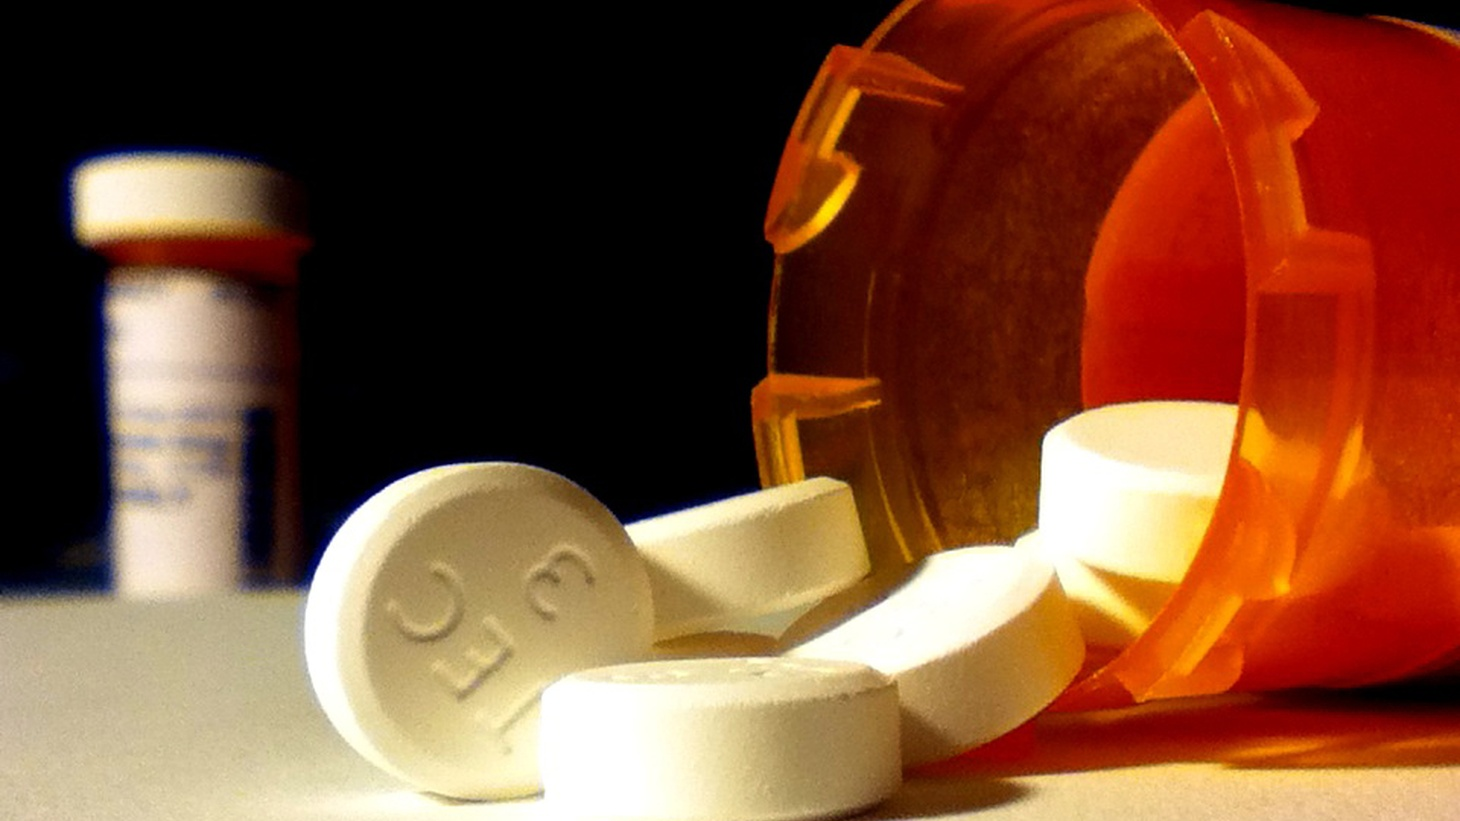 America faces an epidemic of overdose deaths from prescription pain medications as well as illegal heroin. We hear how new thinking about drug addiction has led to new ways for doctors and the pharmaceutical industry to deal with drug addiction.